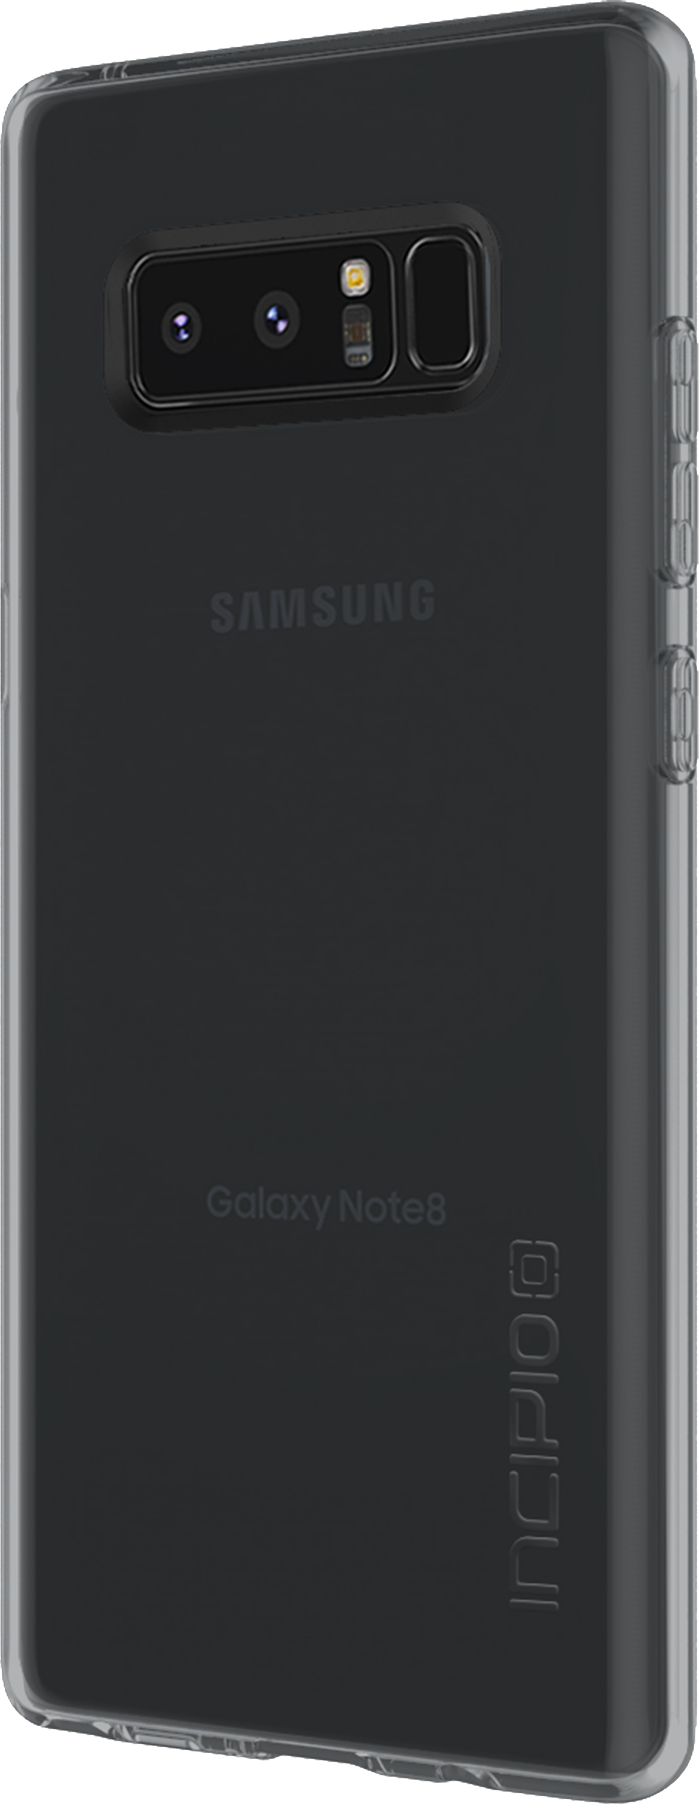 Galaxy Note8 NGP Case